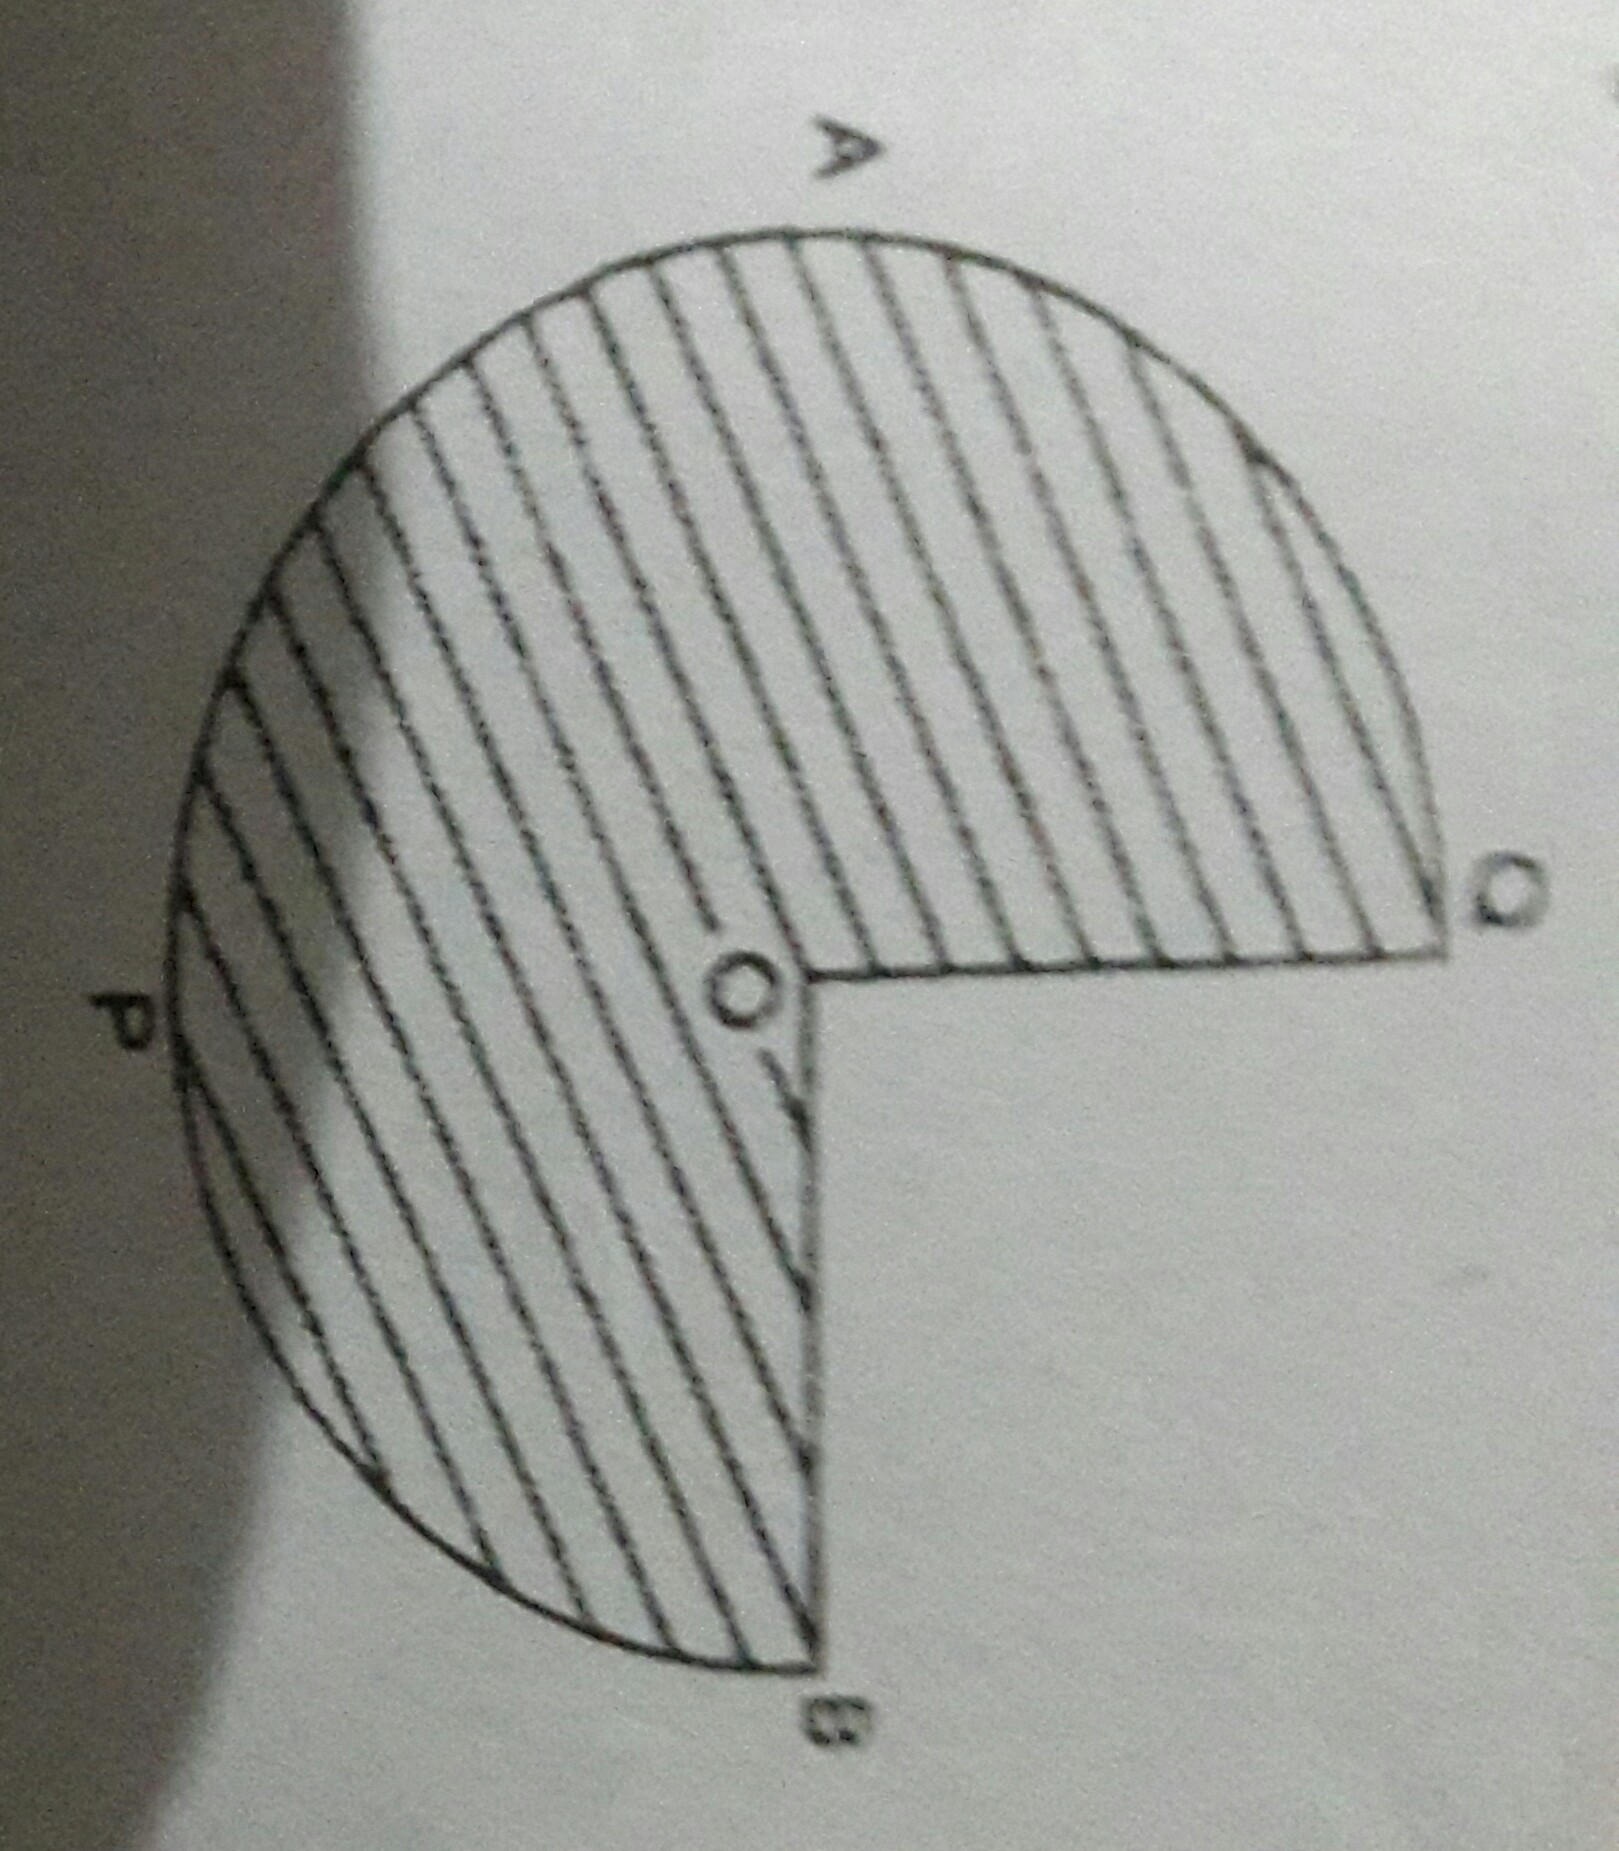 In Figure Apb And Aqp Are Semicircles And Ao Ob If The